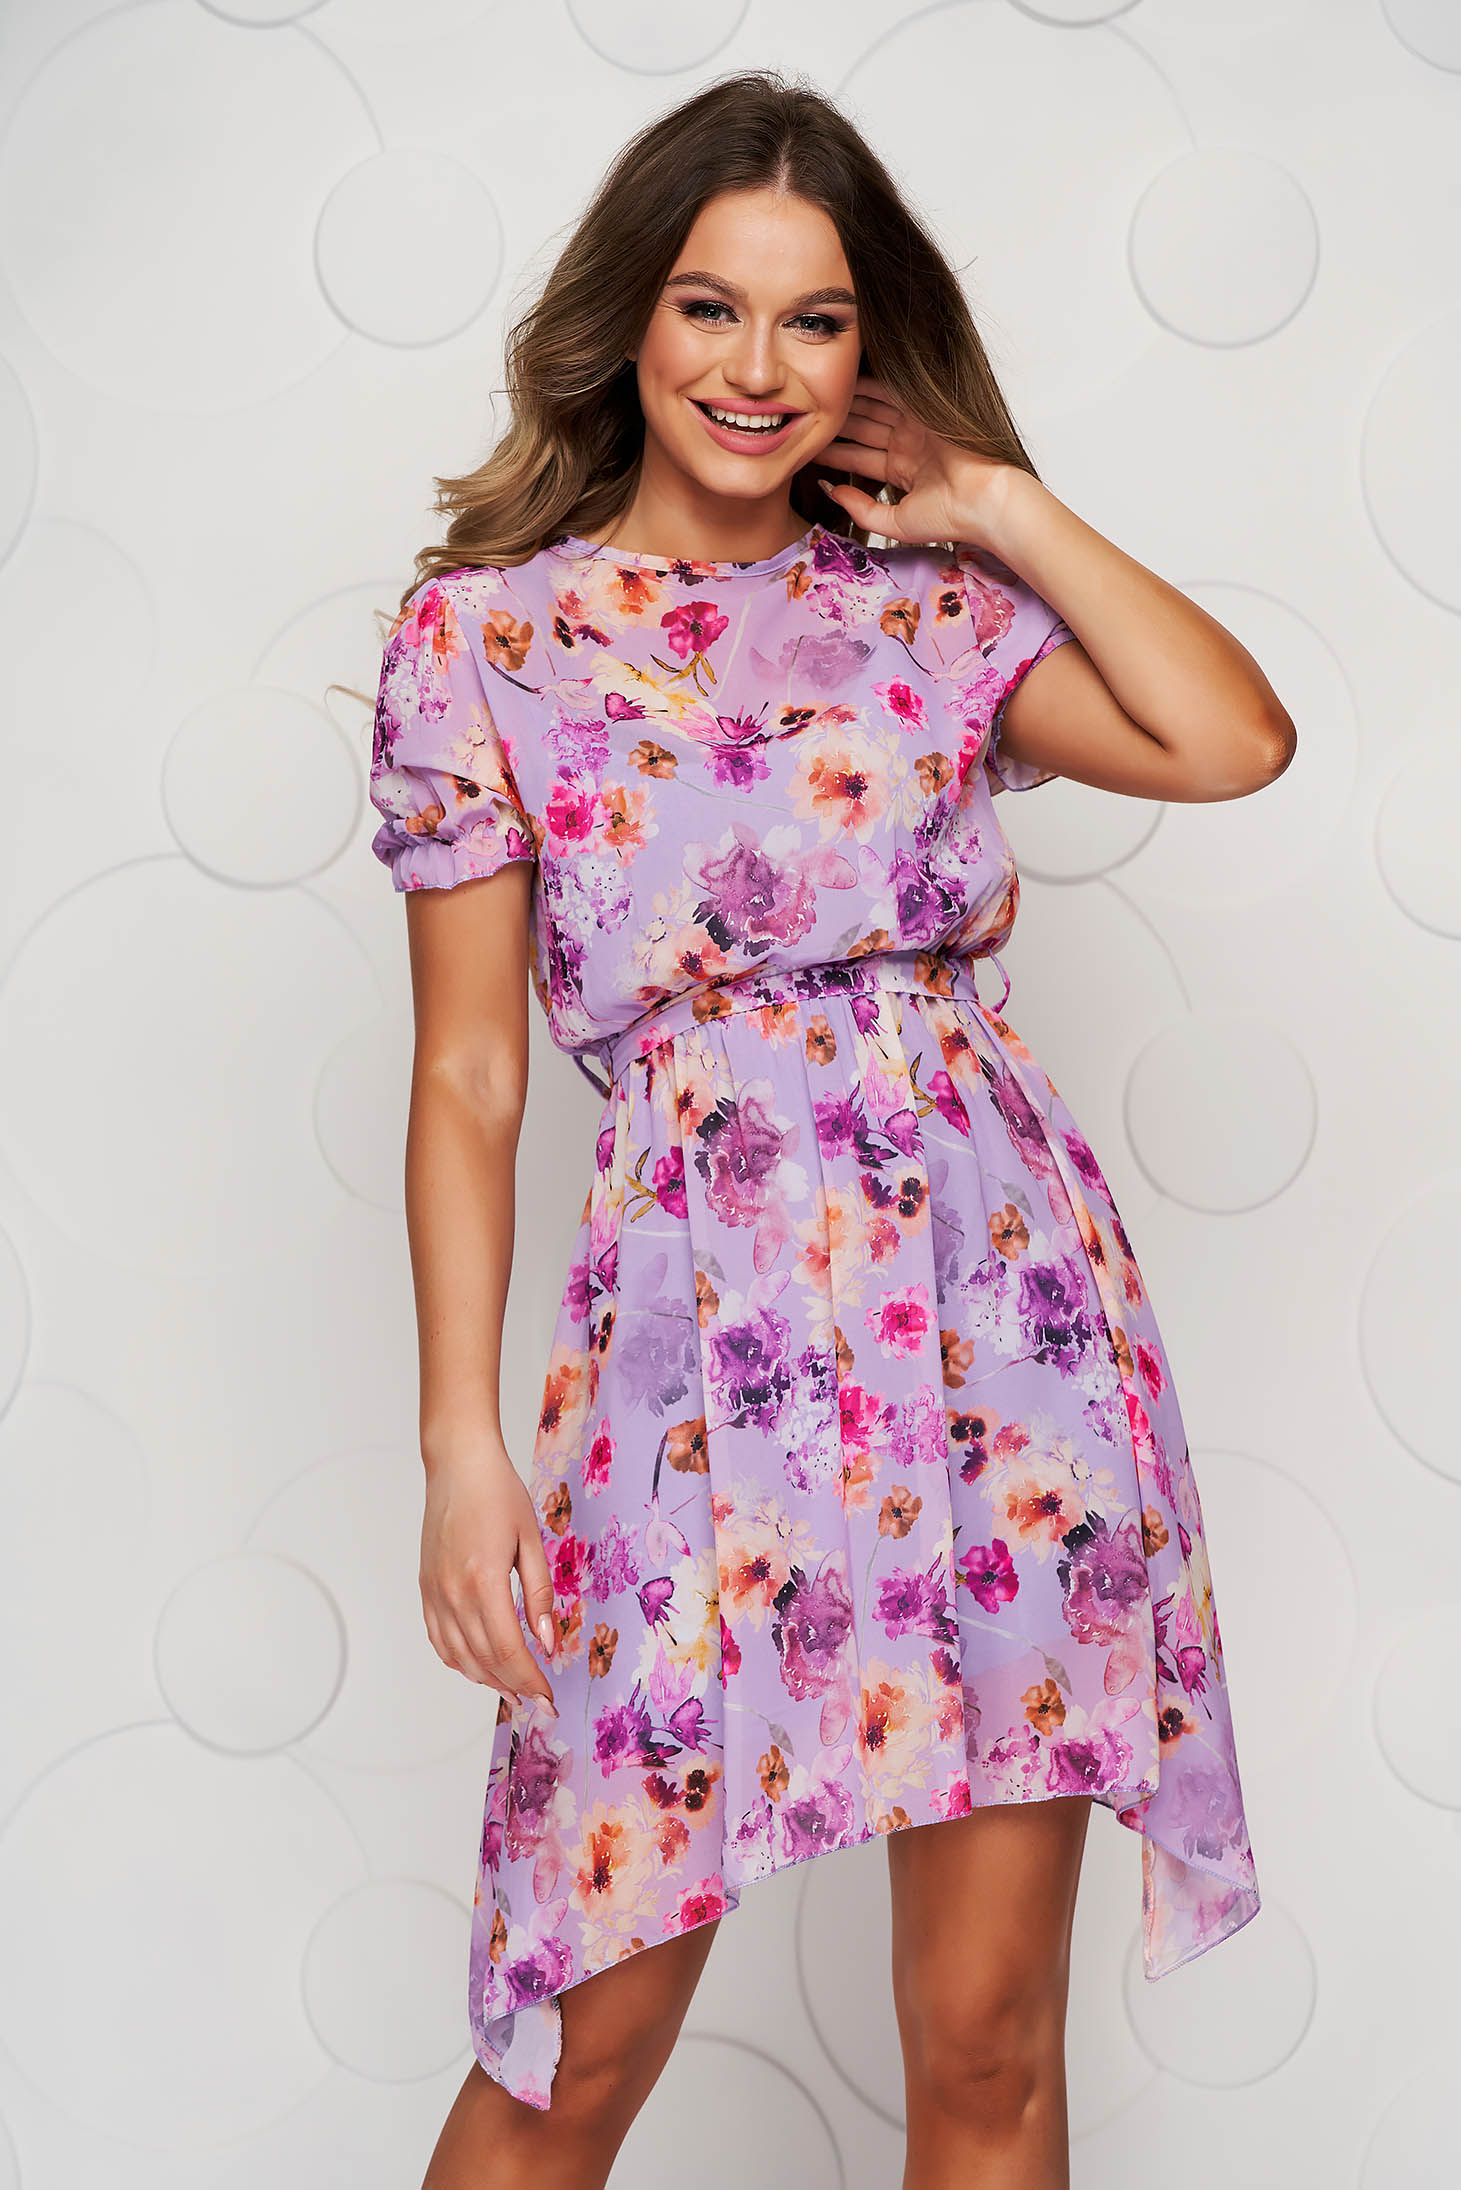 Lila dress asymmetrical cloche with elastic waist with floral print accessorized with tied waistband